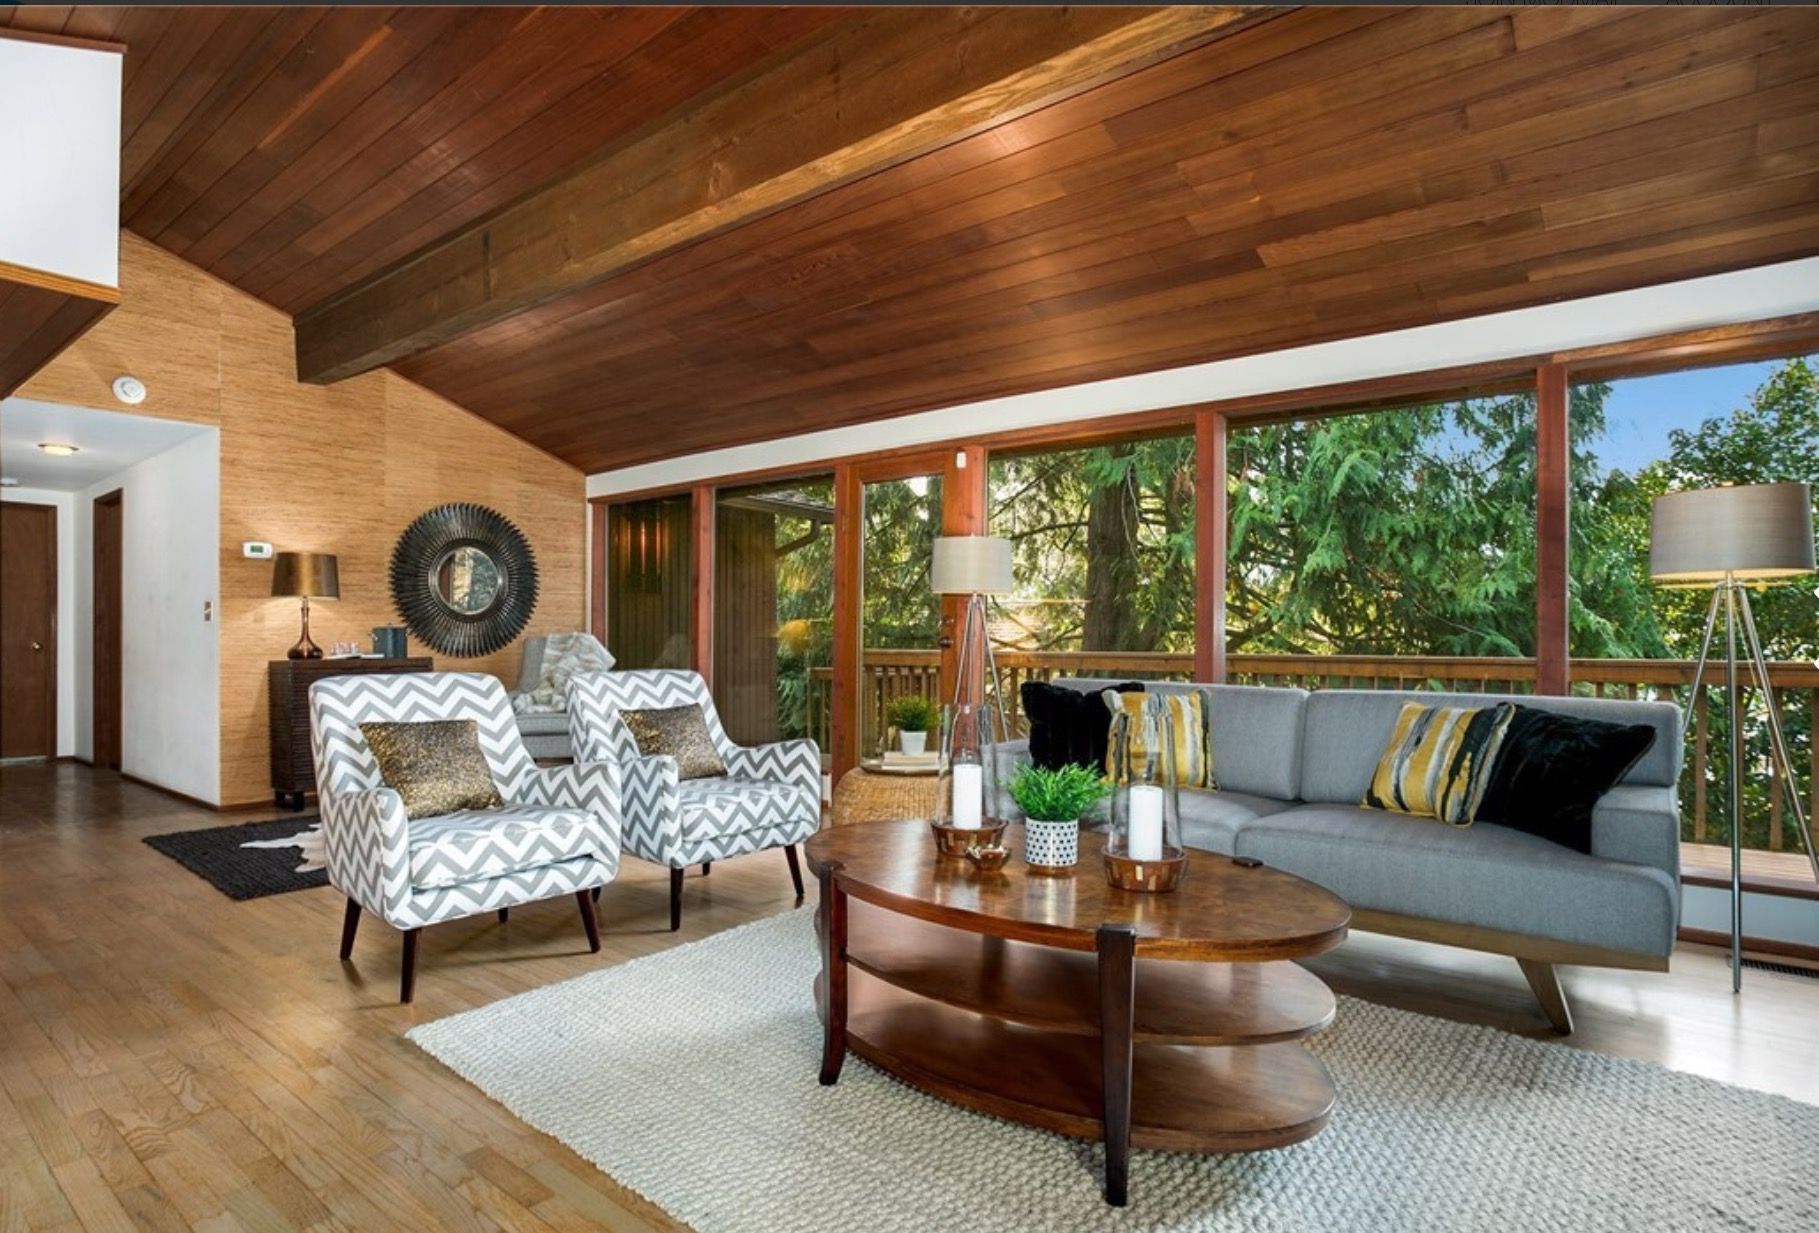 Pin by Sue Rutherford on Mid Century Living Rooms | Mid ... on Outdoor Living Room Set id=81873